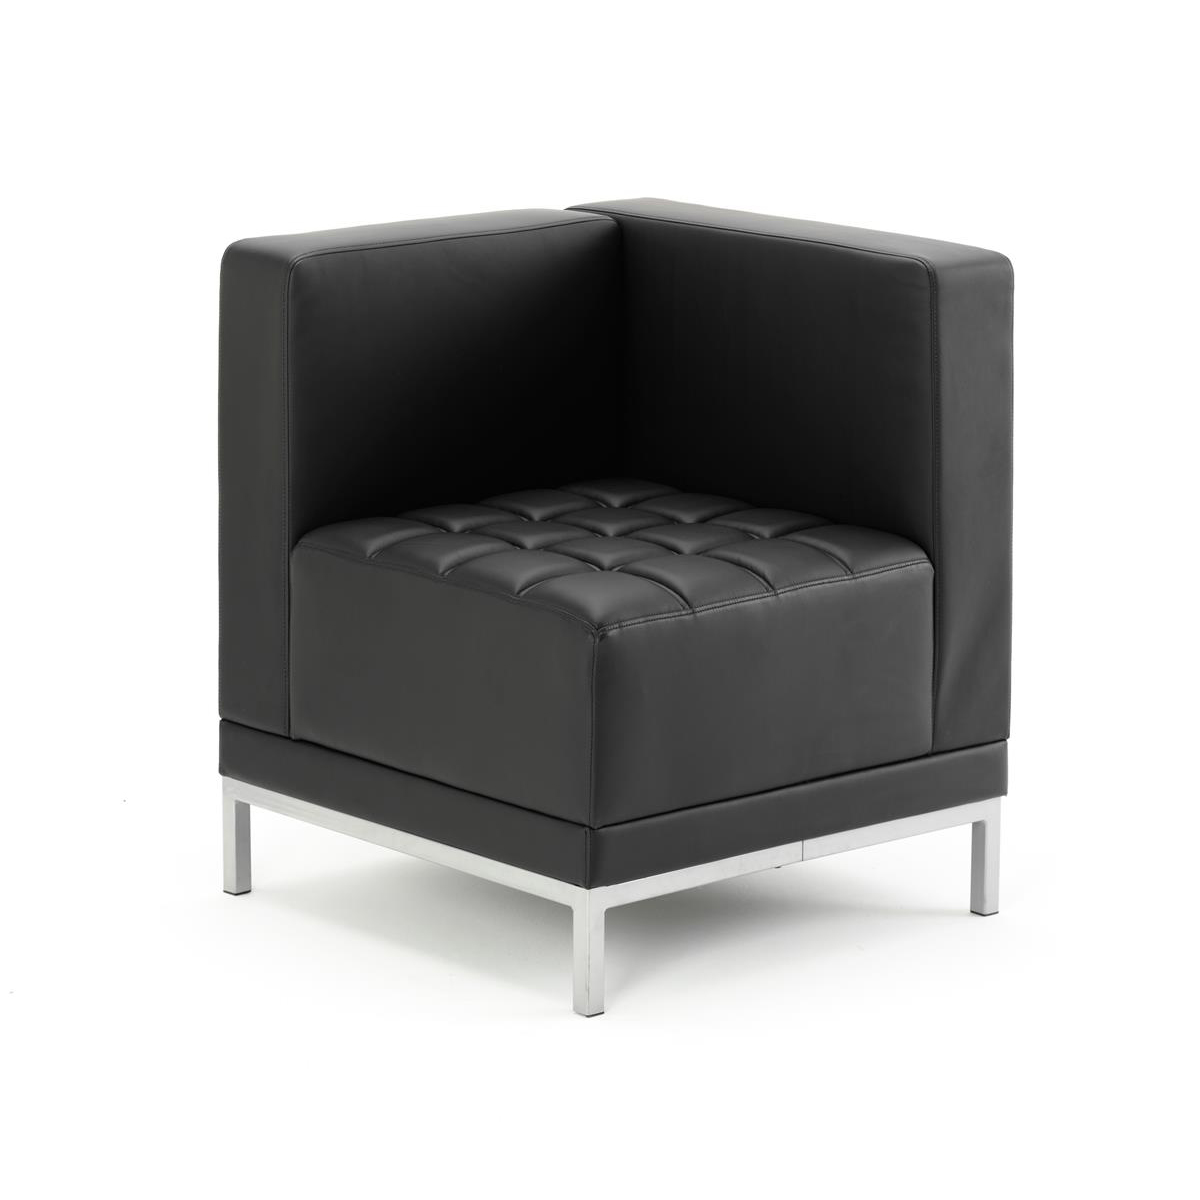 Image for #Sonix Modular Reception Corner Chair Bonded Leather 520x520x440mm Ref BR000198